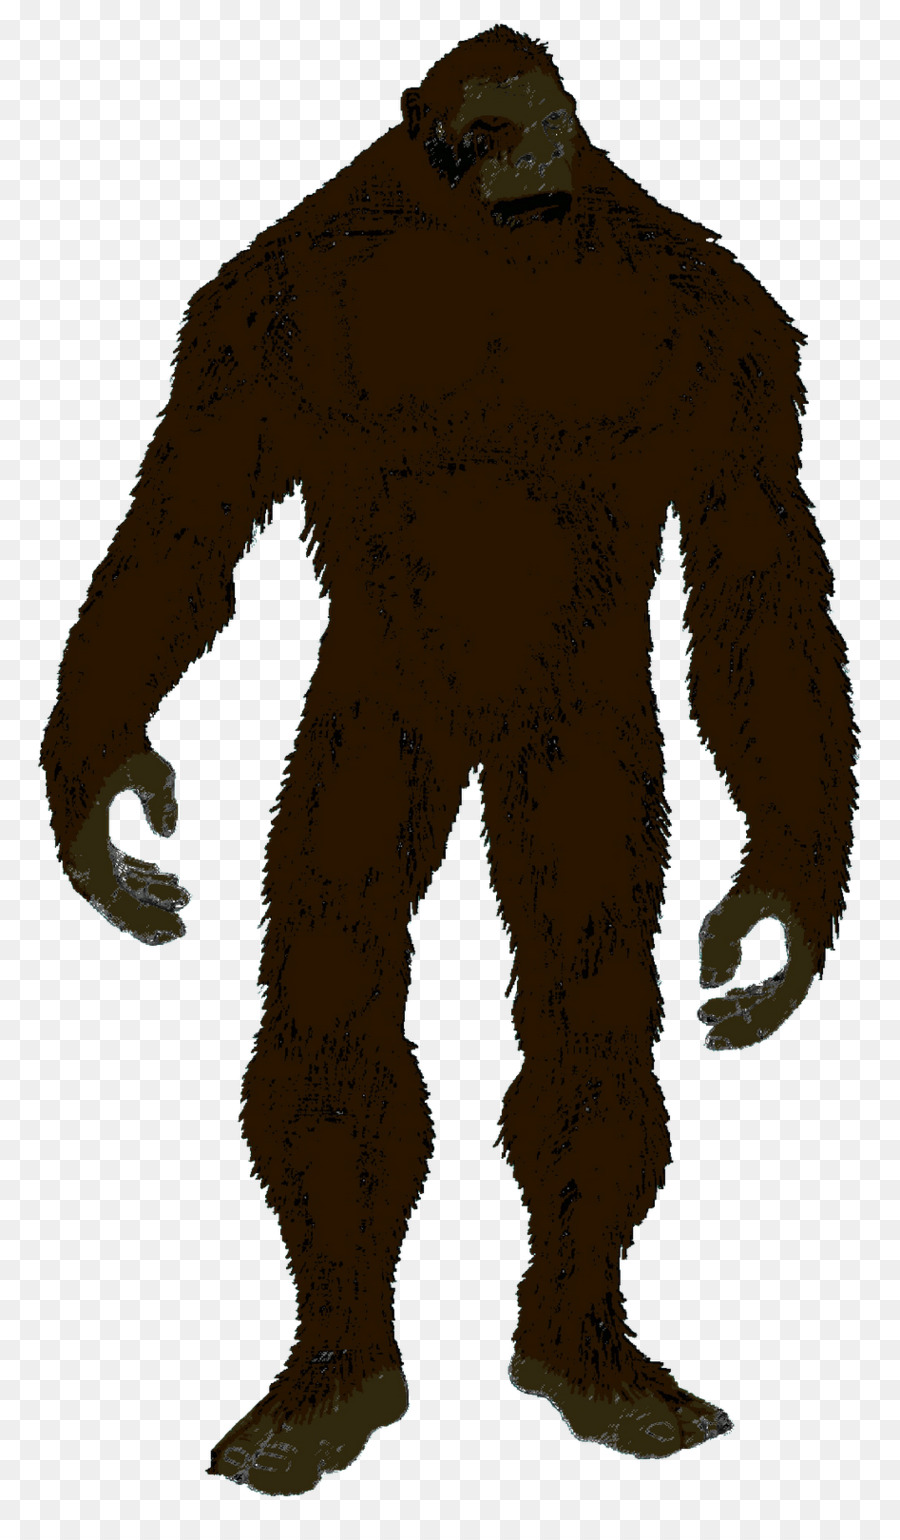 Bigfoot Silhouette Black and white Clip art.